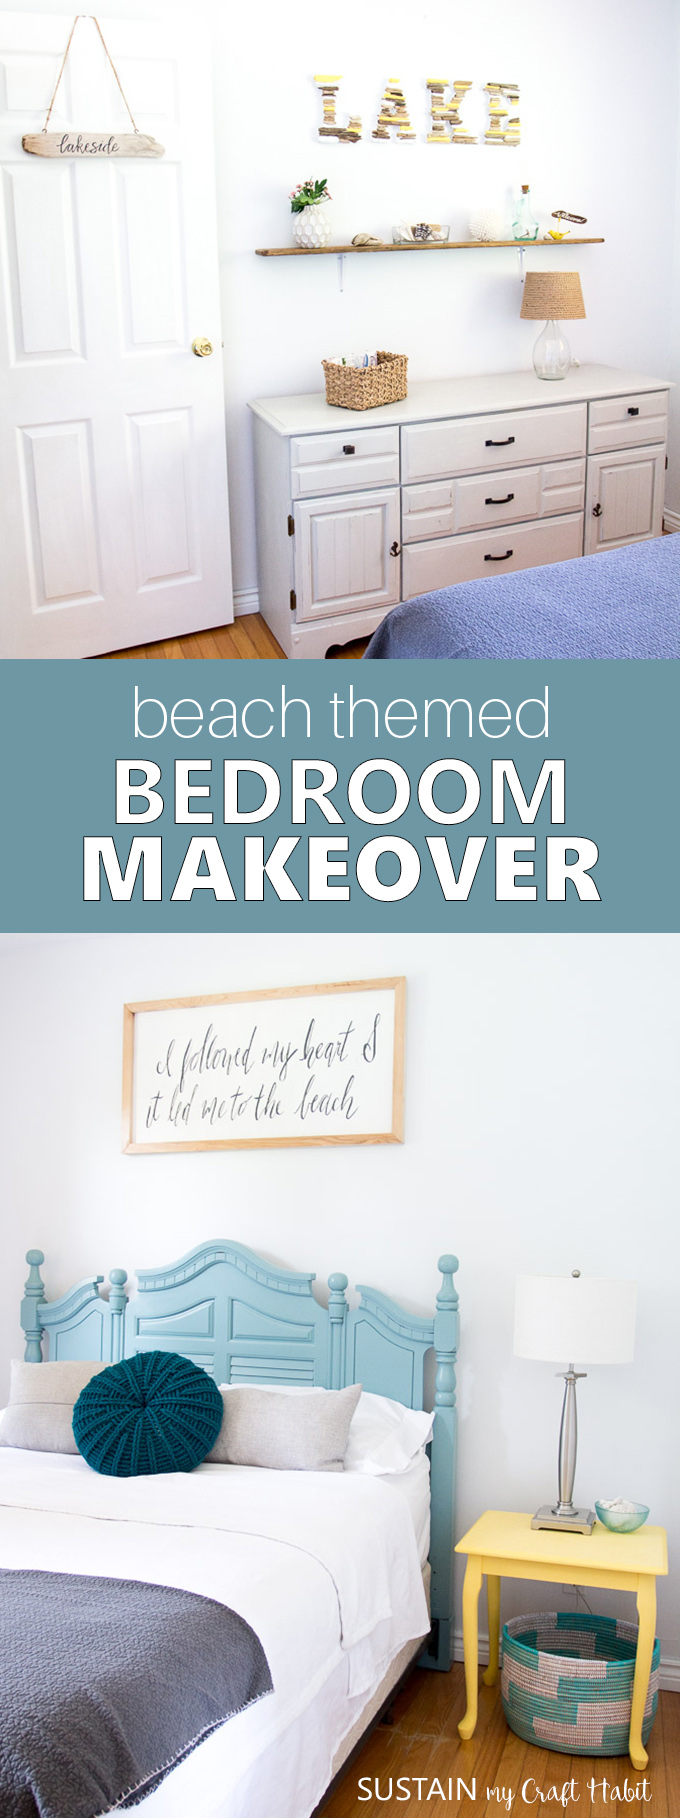 Beach themed bedrooms | Coastal style bedroom makeover | Beachy bedroom decor | Beach house decor on a budget | #coastalstyle #cottagedecor #beachthemedbedroom #beachbedroom #coastaldecor